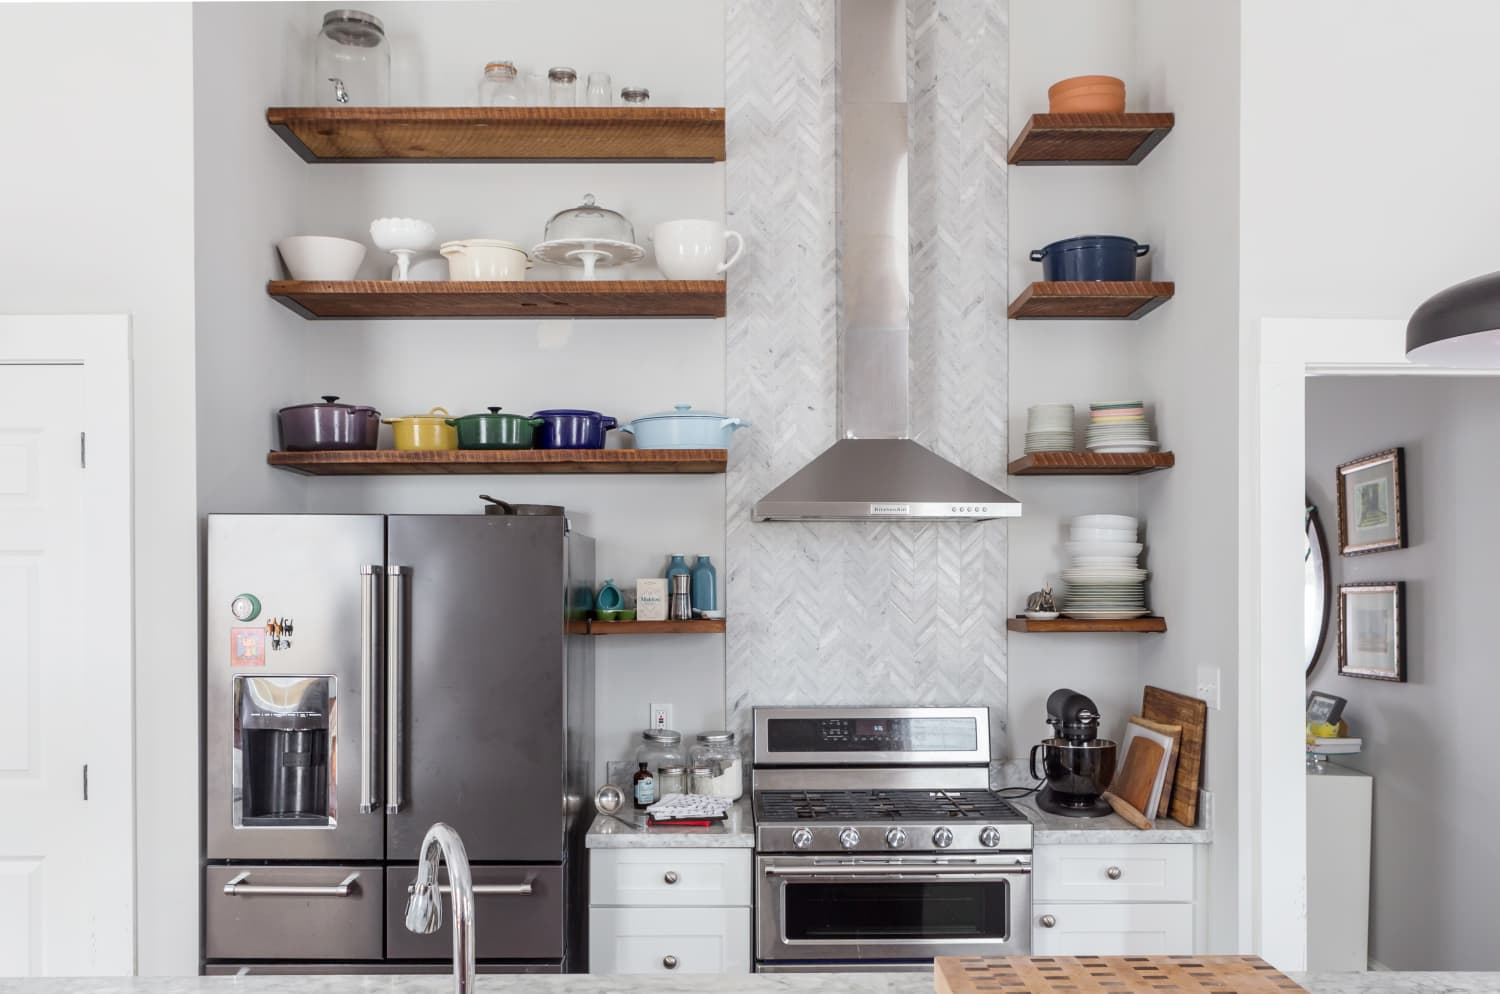 10 Buy-It-for-Life Kitchen Tools You Should Get Now and Enjoy Forever